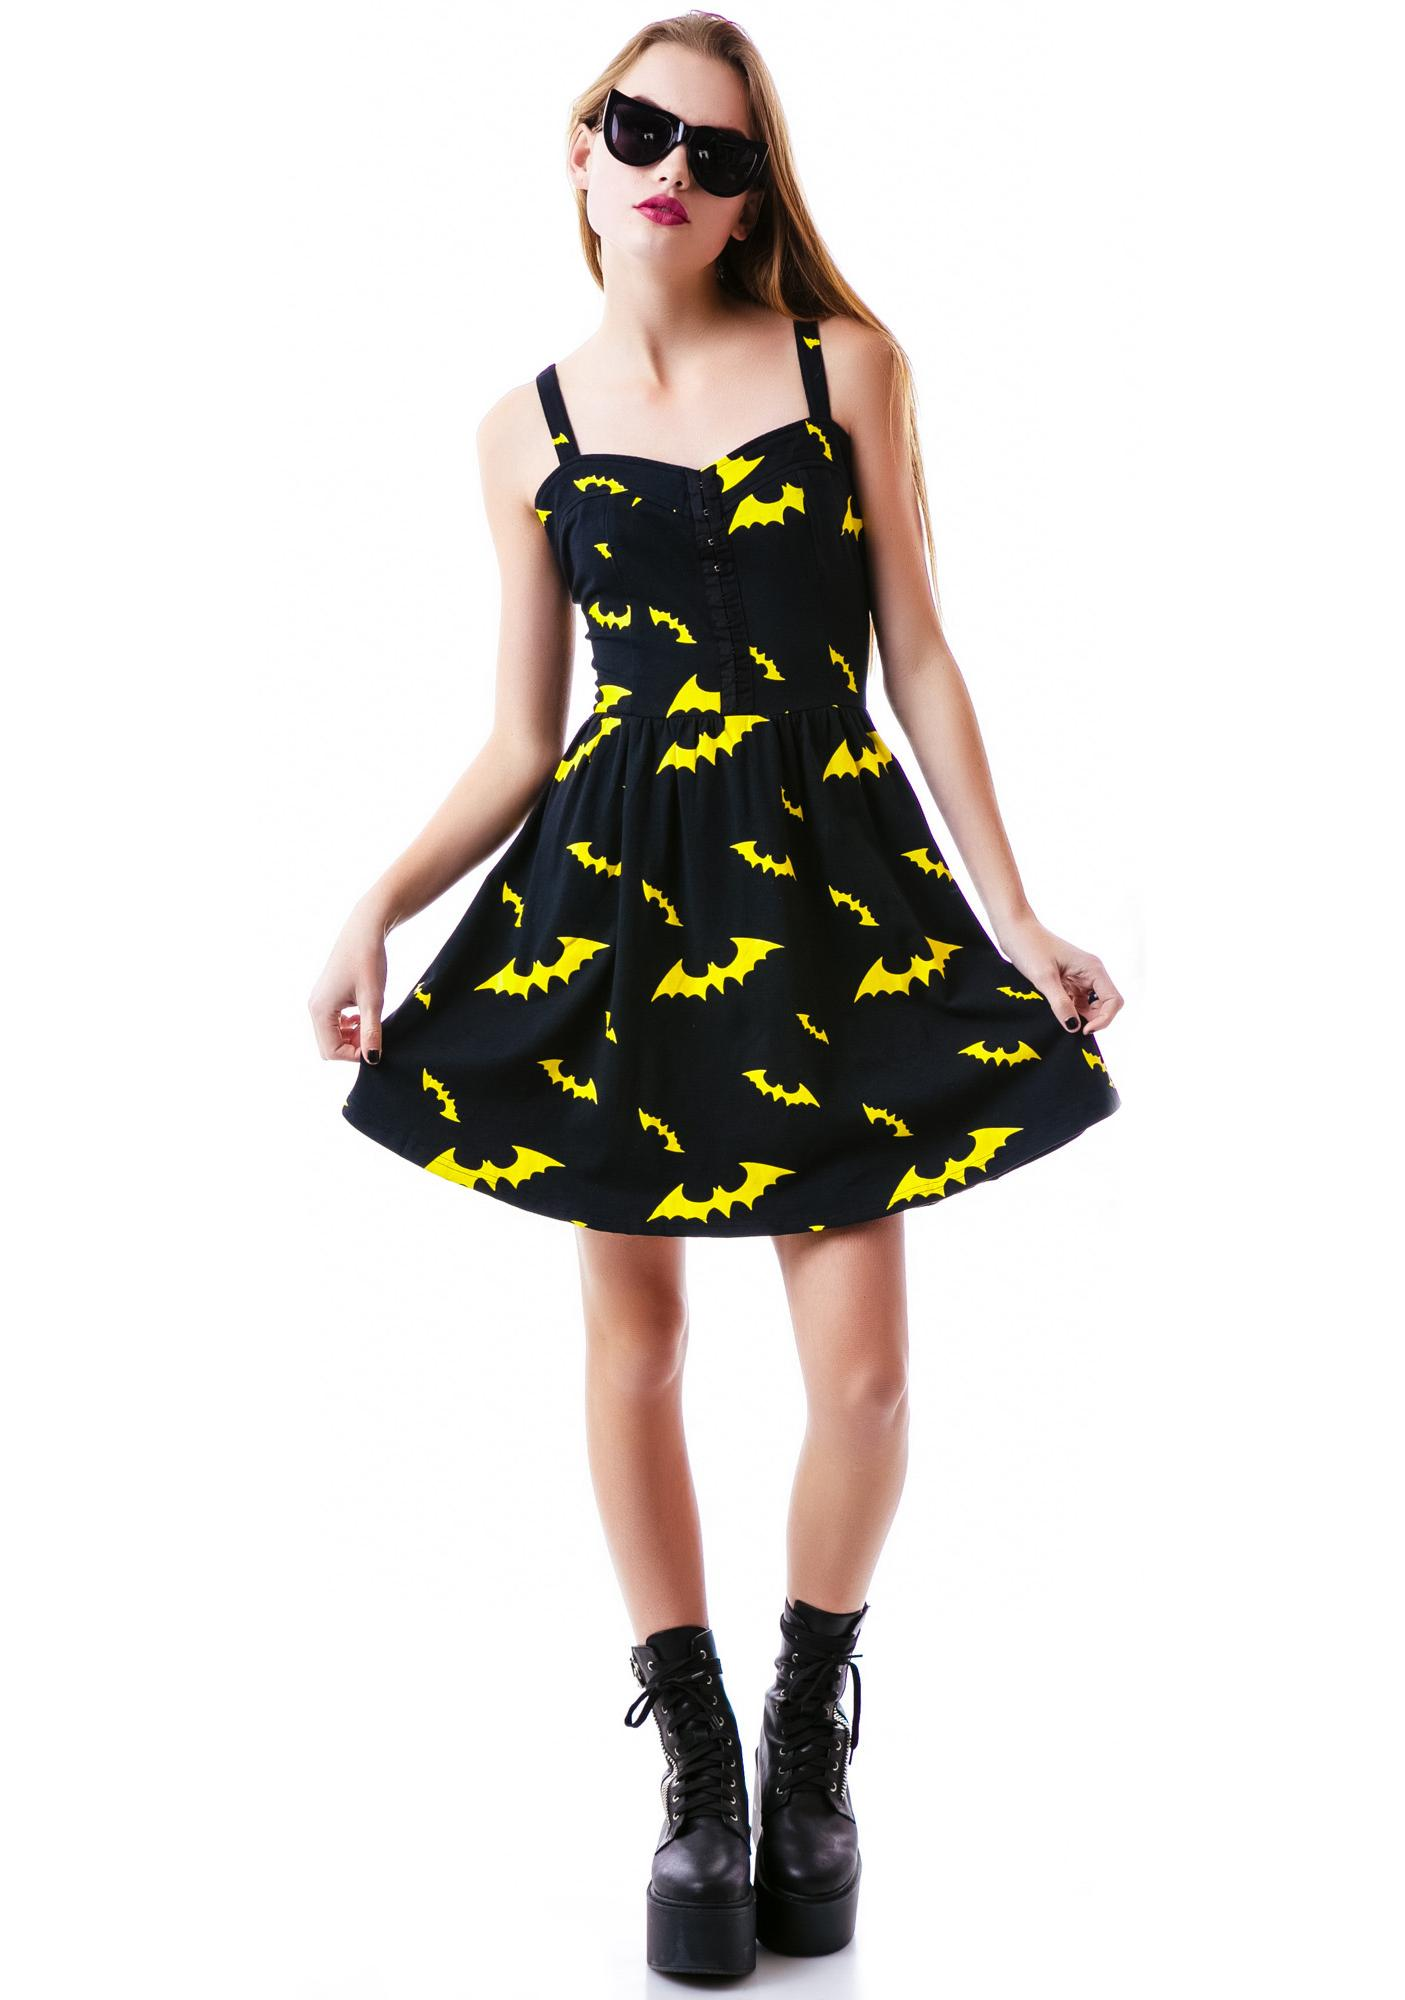 Bat Crazy Dress